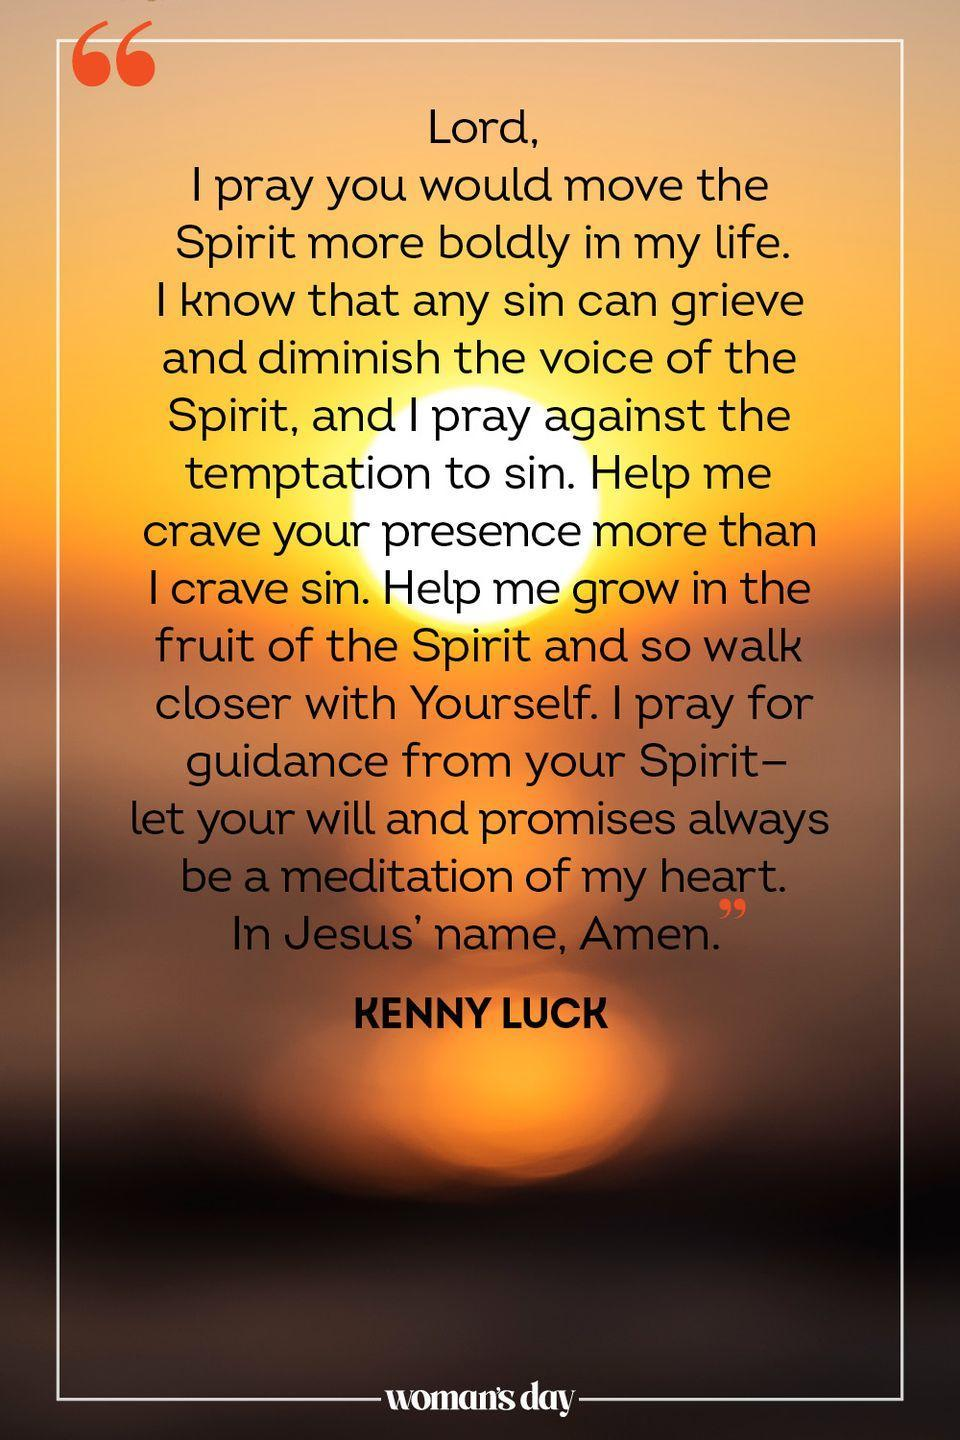 """<p>Lord, </p><p>I pray you would move the Spirit more boldly in my life. I know that any sin can grieve and diminish the voice of the Spirit, and I pray against the temptation to sin. Help me crave your presence more than I crave sin. Help me grow in the fruit of the Spirit and so walk closer with Yourself. I pray for guidance from your Spirit — let your will and promises always be a meditation of my heart. </p><p>In Jesus' name, Amen.</p><p>— <a href=""""https://www.oneplace.com/devotionals/your-daily-prayer/a-prayer-for-guidance-from-the-holy-spirit-your-daily-prayer-april-10-2018-11761707.html"""" rel=""""nofollow noopener"""" target=""""_blank"""" data-ylk=""""slk:Kenny Luck"""" class=""""link rapid-noclick-resp"""">Kenny Luck</a></p>"""